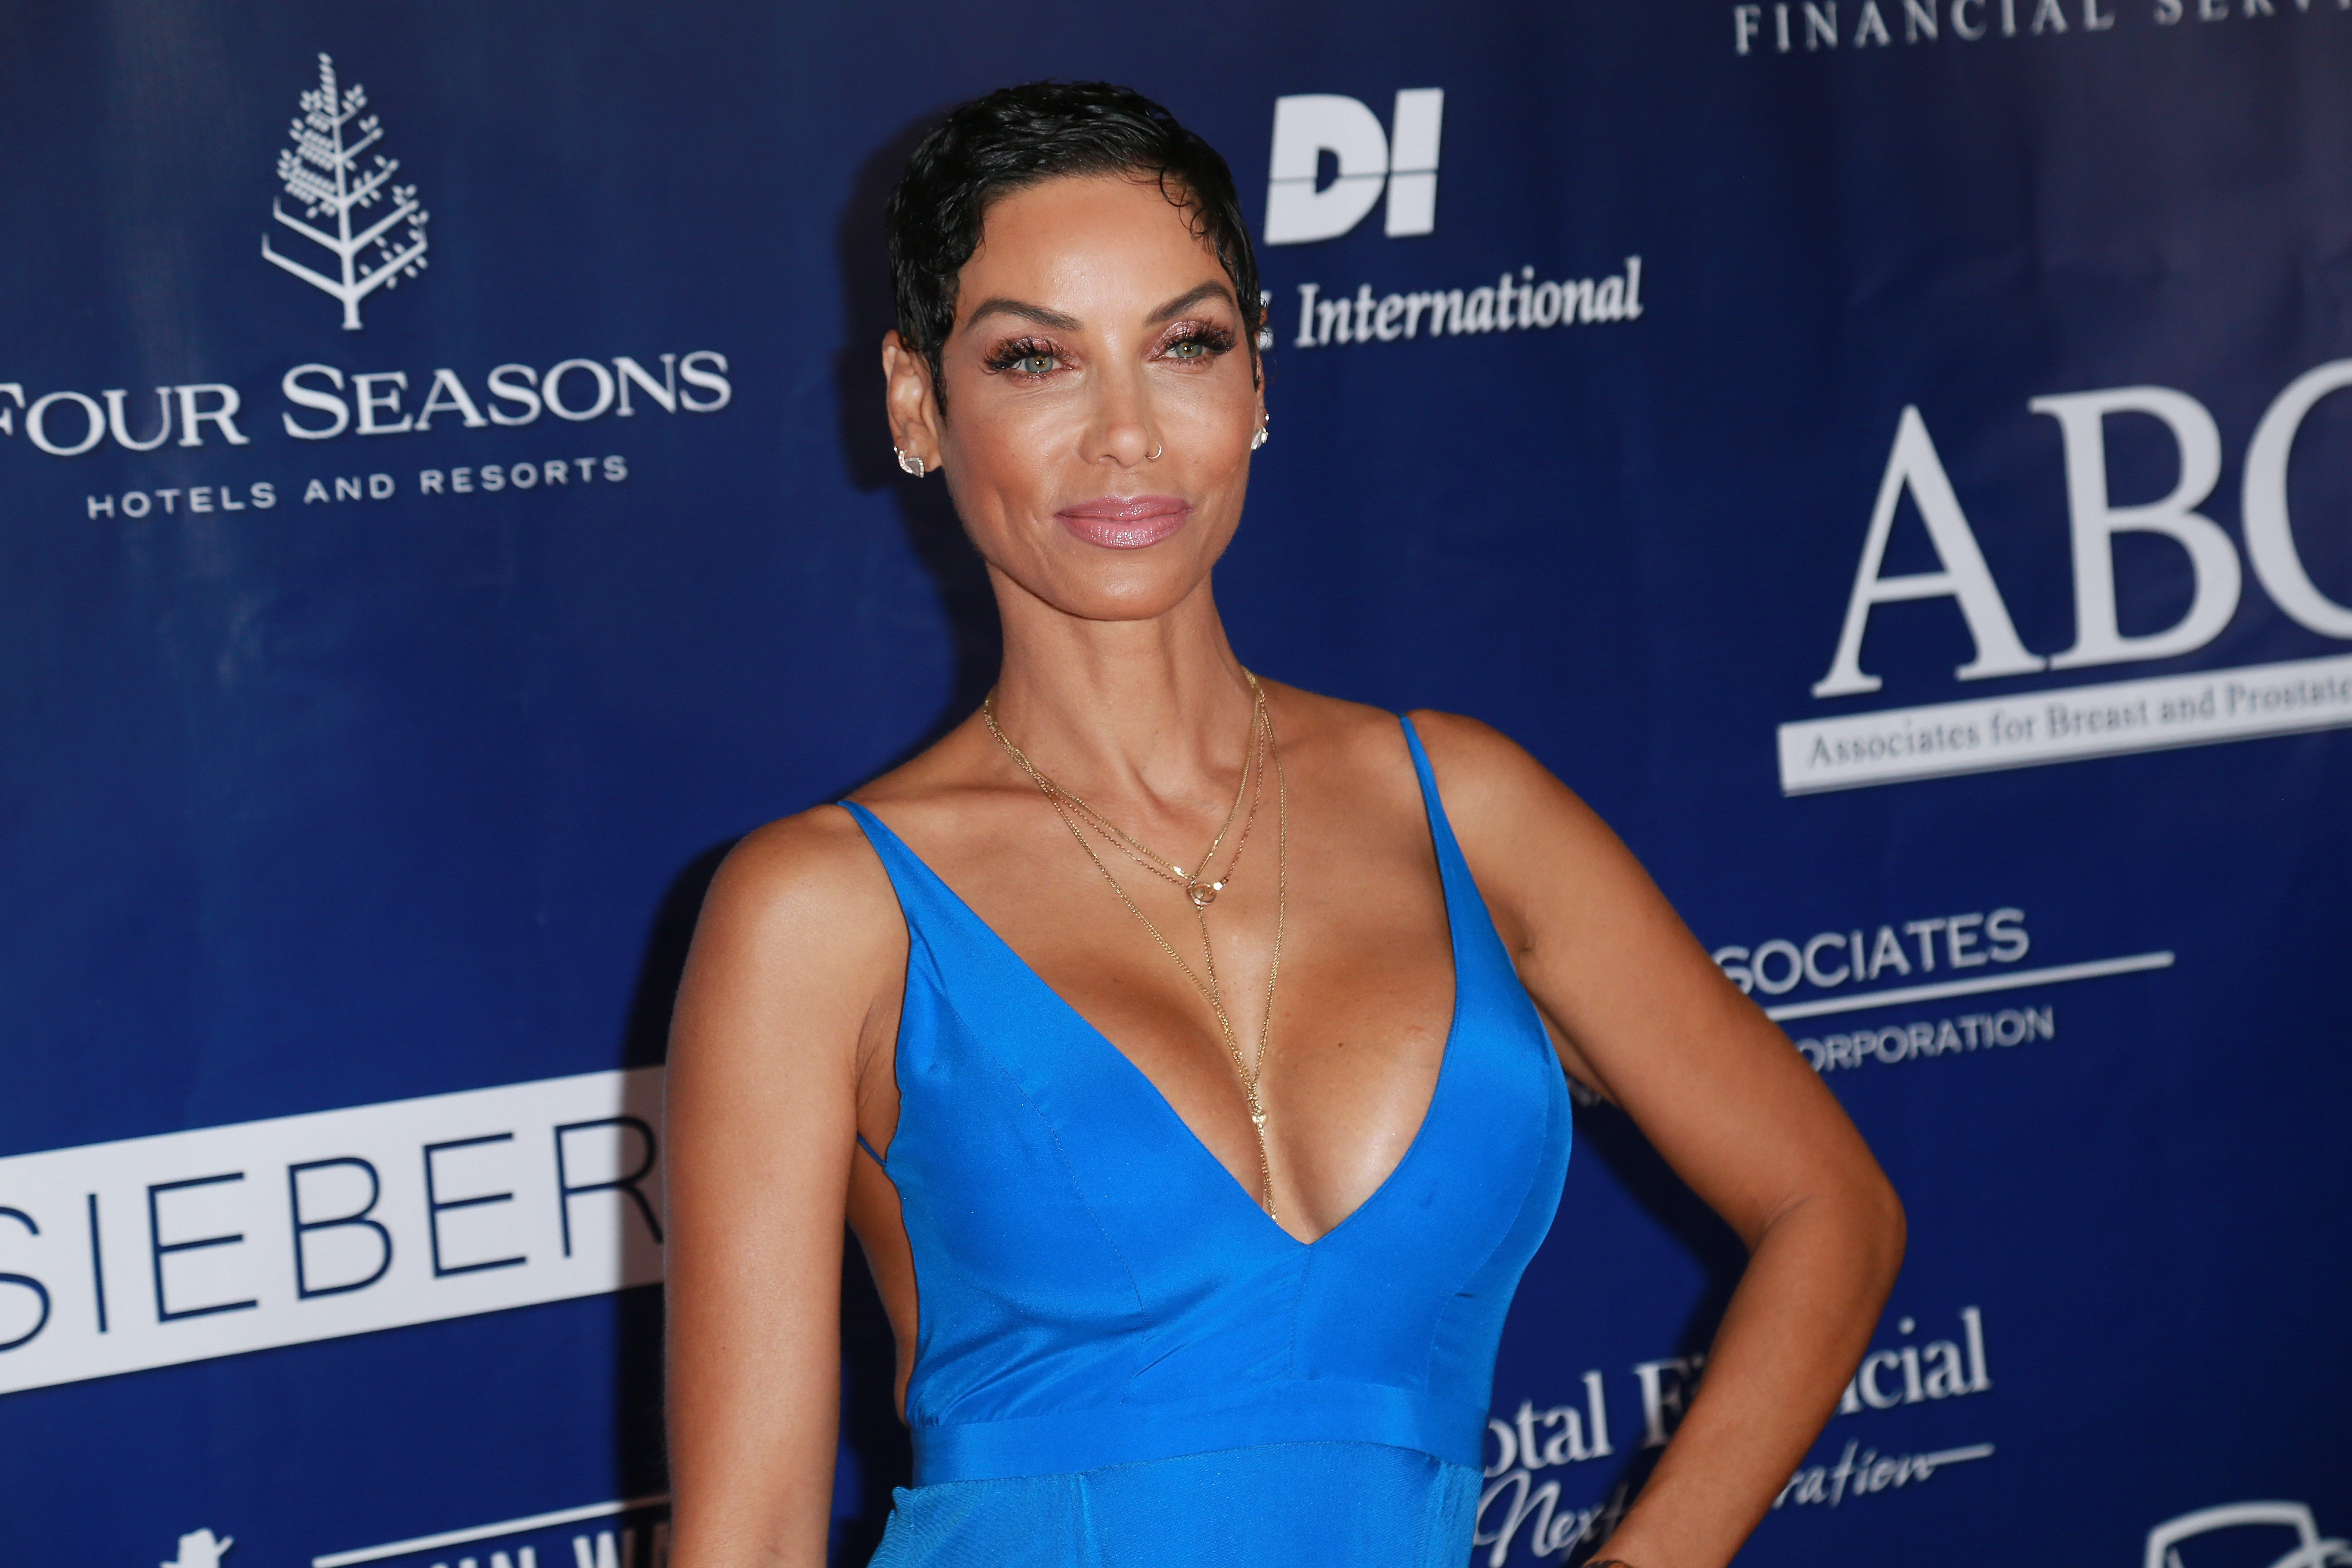 Nicole Mitchell Murphy attends the 28th Annual Talk of the Town Gala on November 18, 2017. | Photo: Getty Images